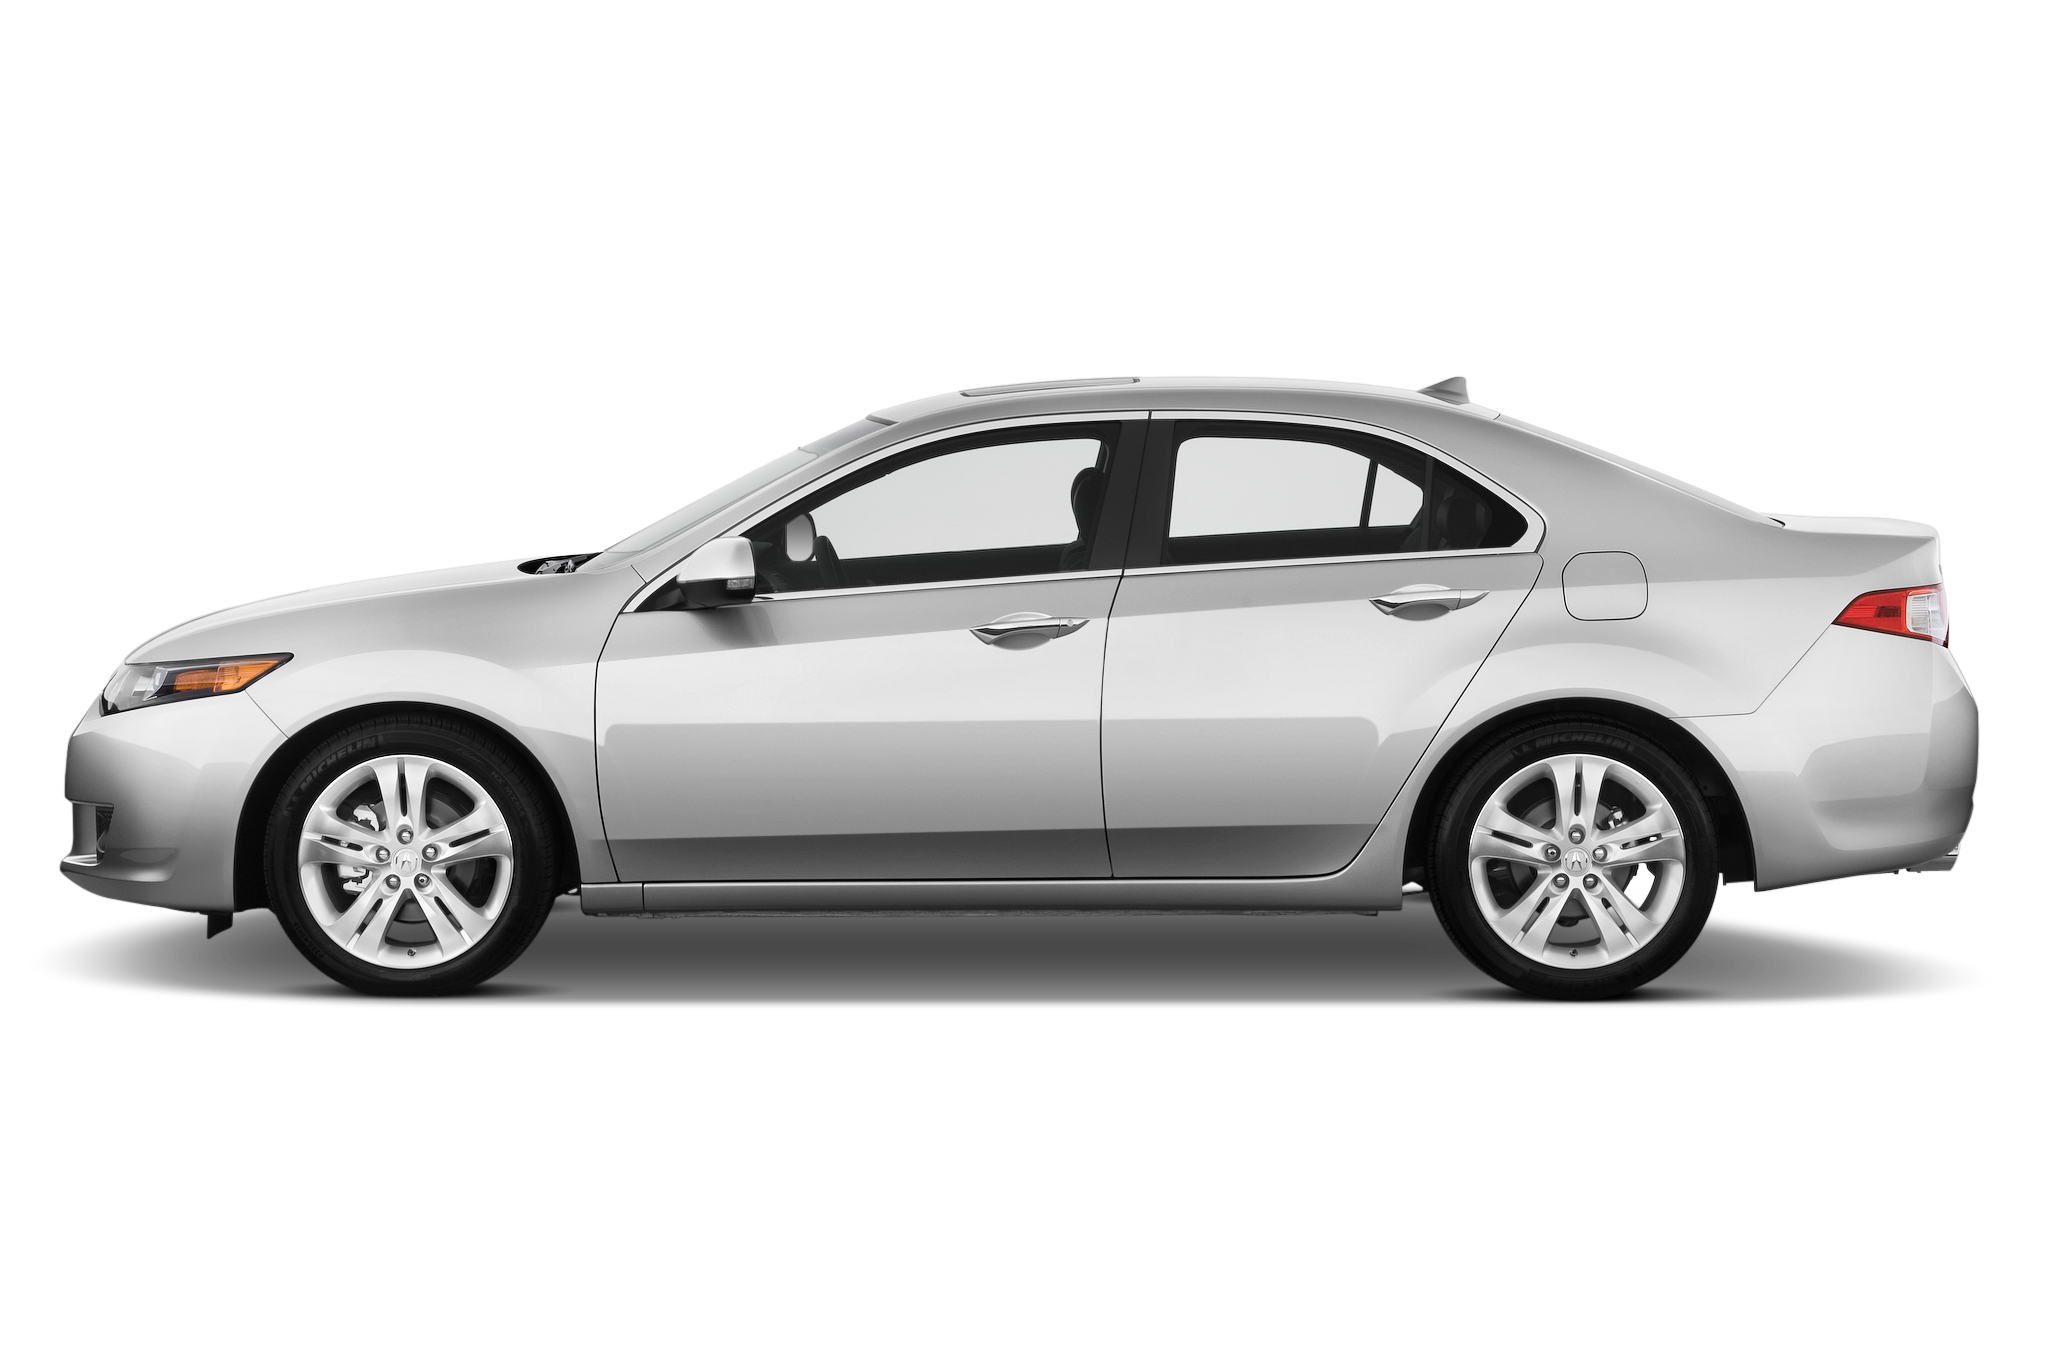 2010 acura tsx v6 acura luxury sport sedan review. Black Bedroom Furniture Sets. Home Design Ideas